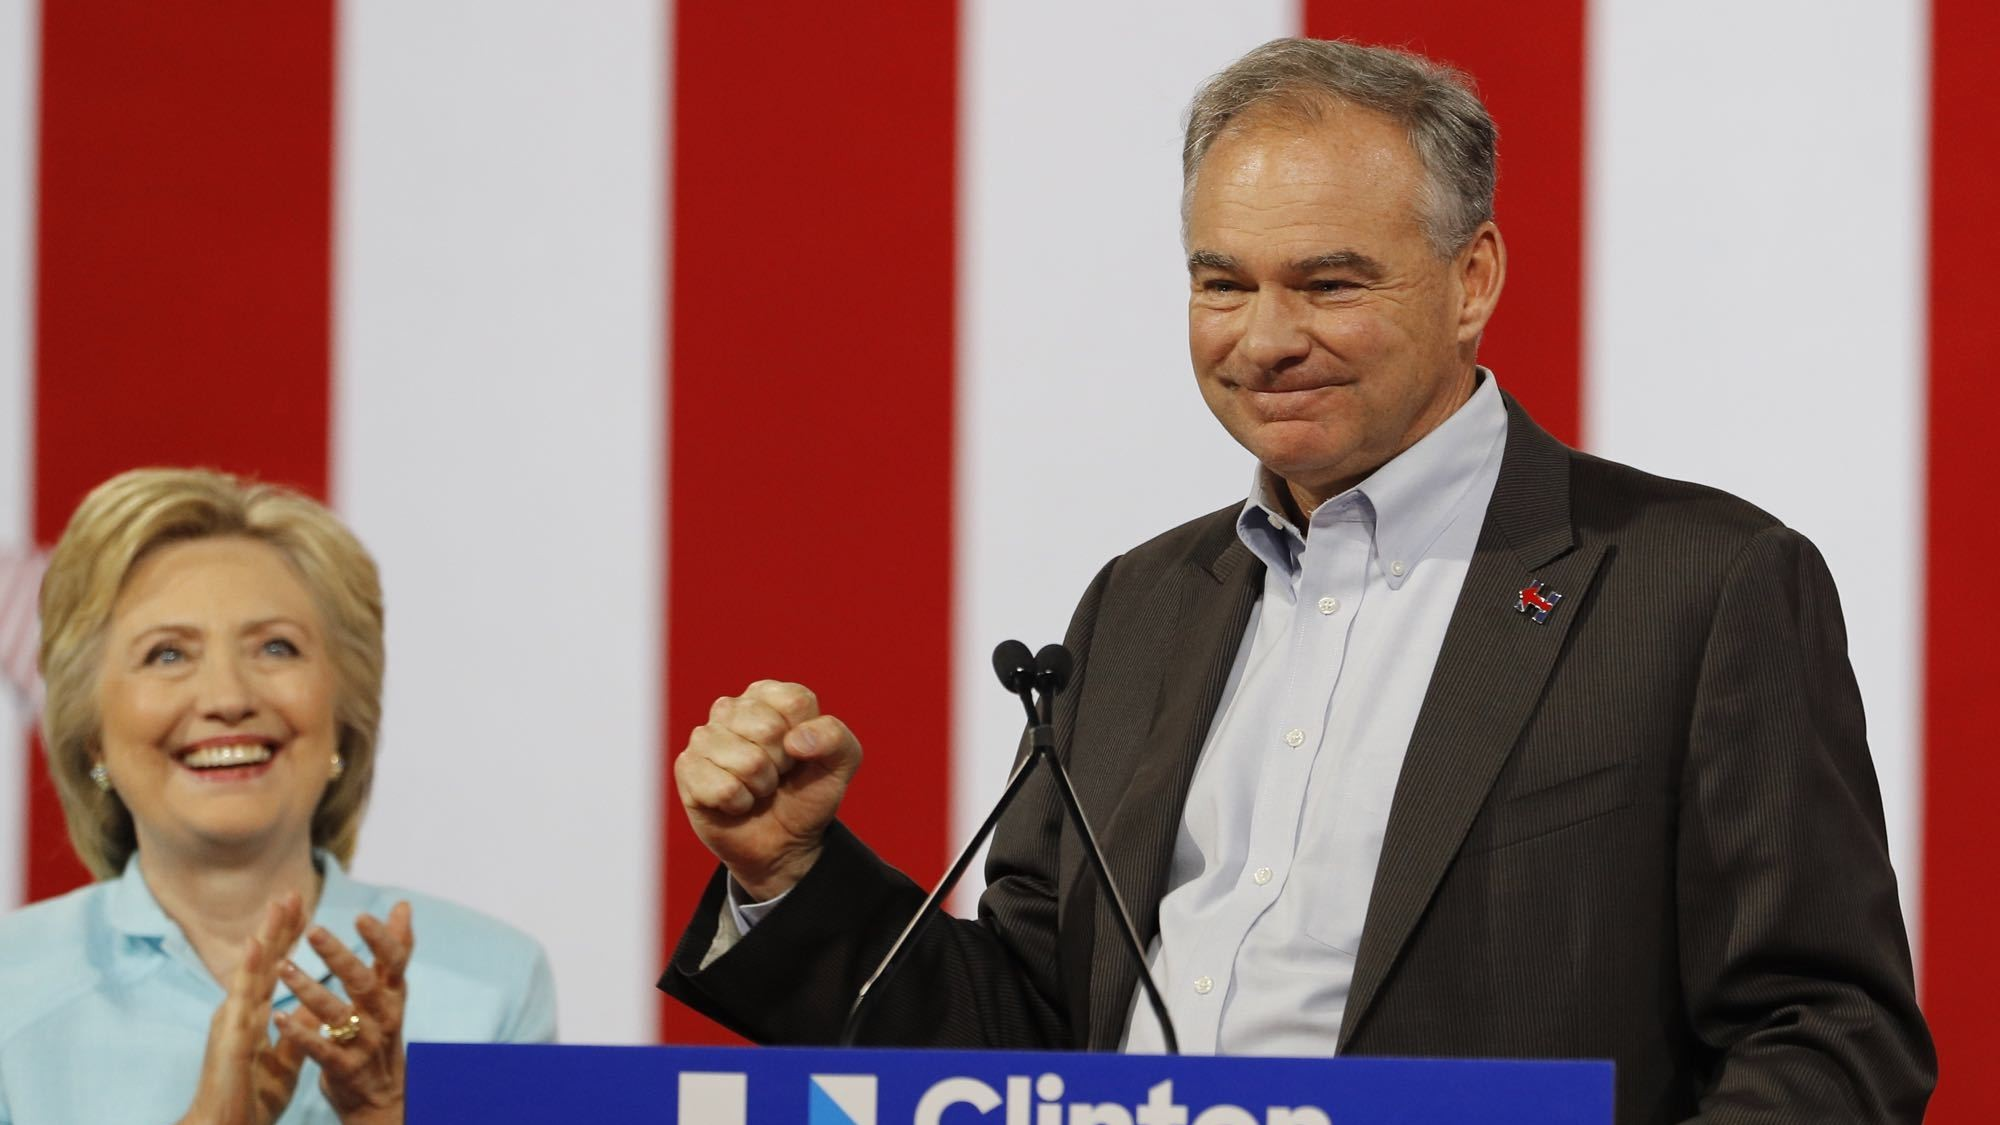 Democratic vice presidential pick Tim Kaine known for controversial abortion, death penalty decisions